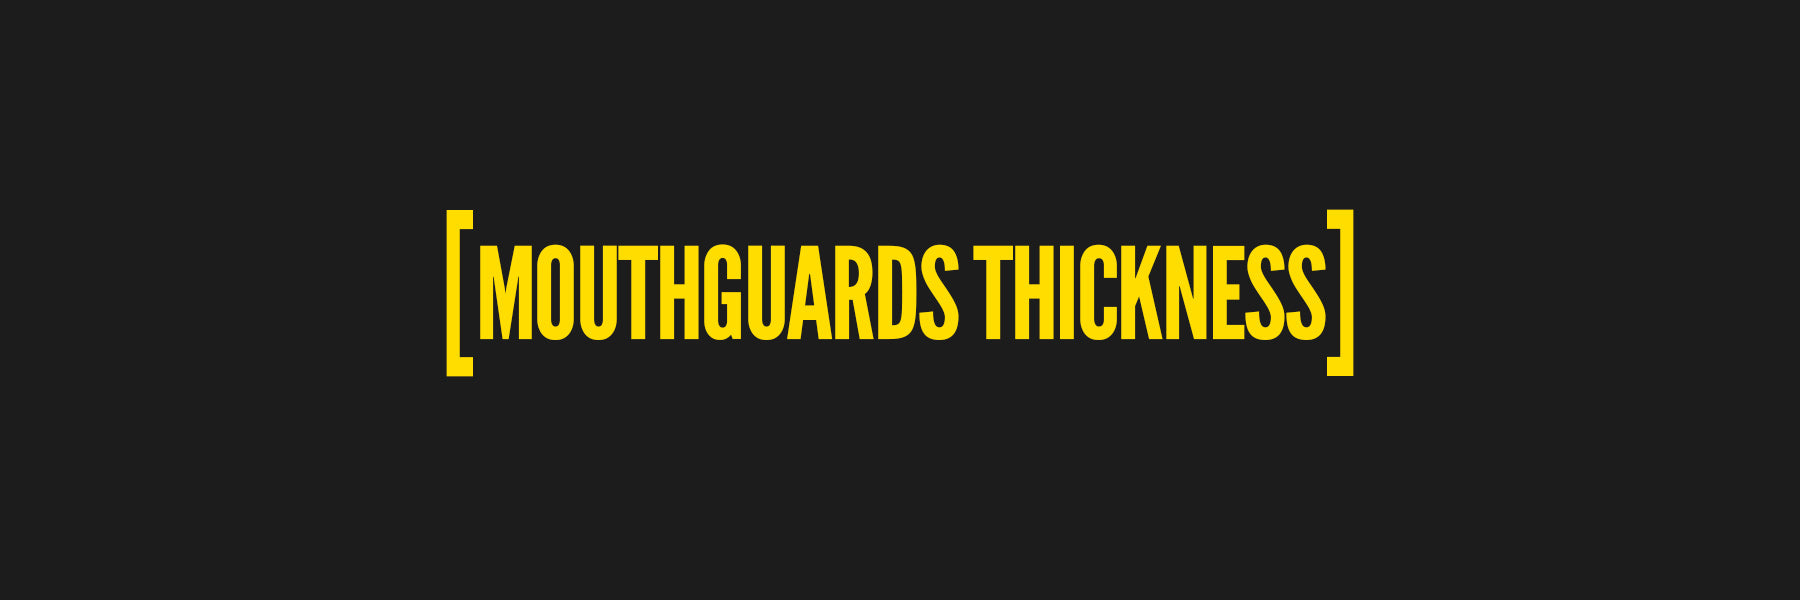 Best night guard thickness